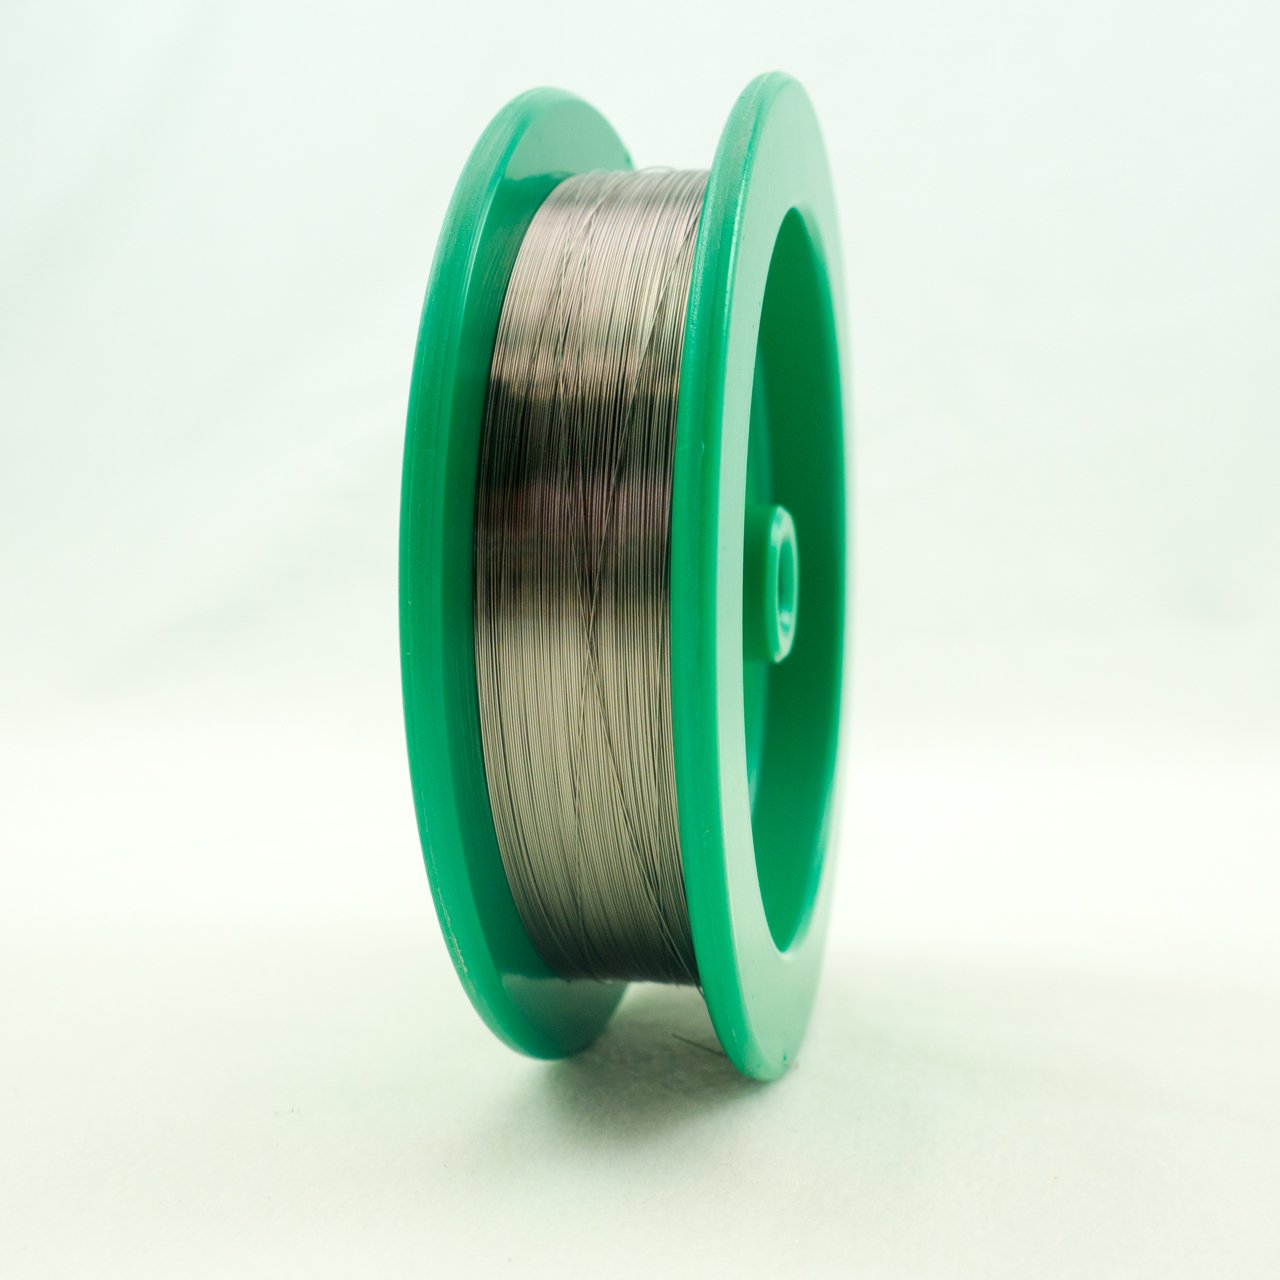 0.0050 Diameter 99.95/% Tungsten Fine Wire 0.127 mm 500 meter//spool cleaned and straightened